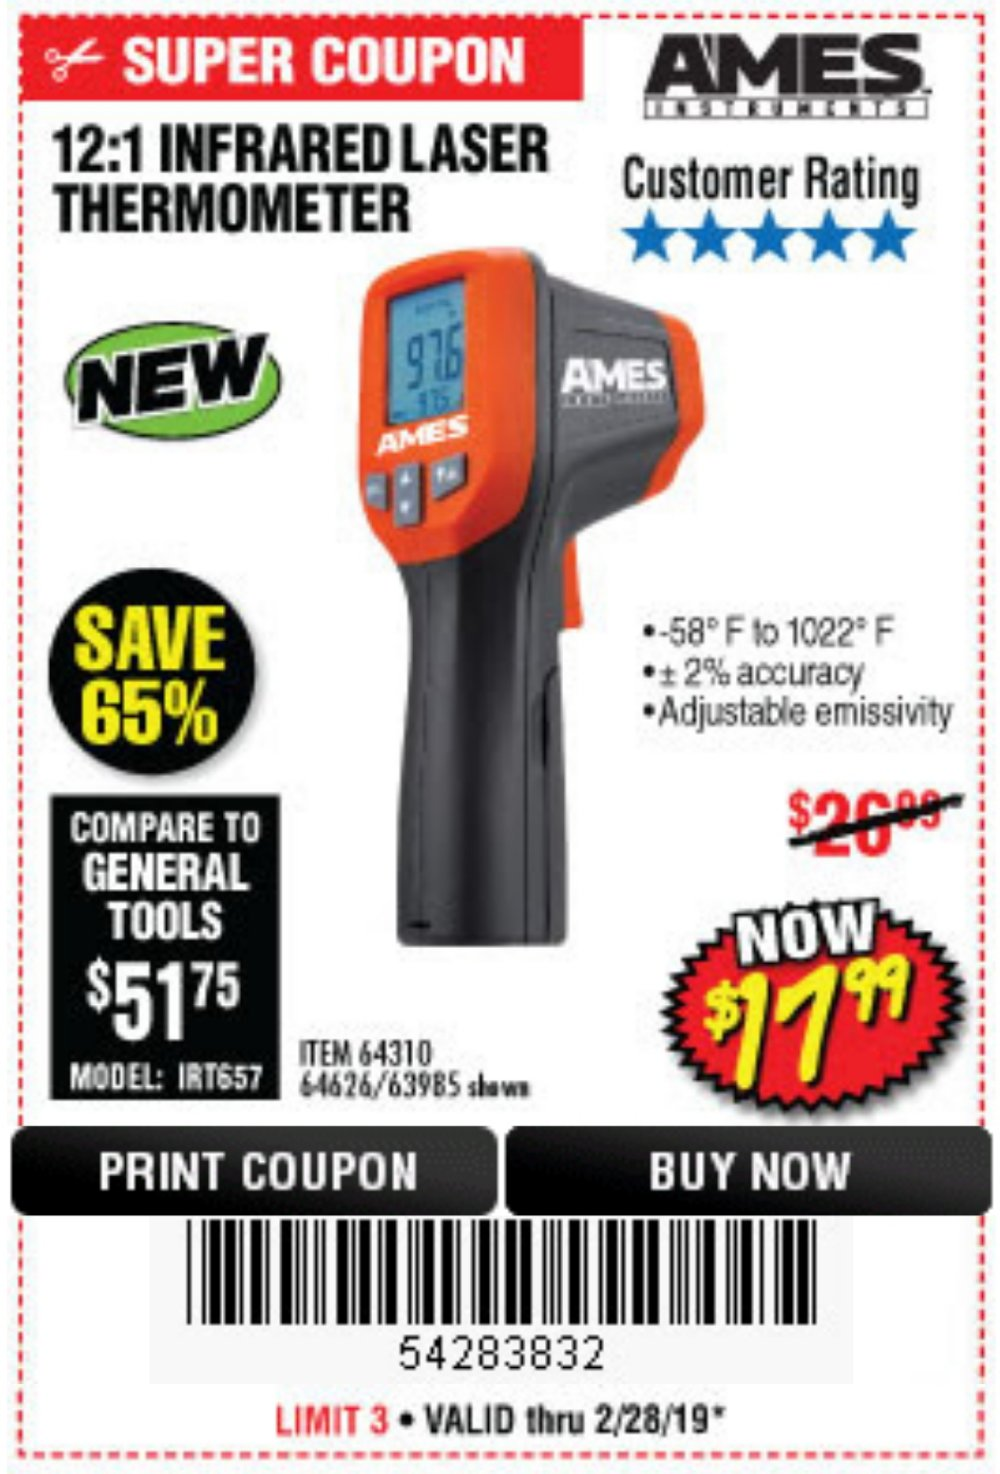 Harbor Freight Coupon, HF Coupons - 54283